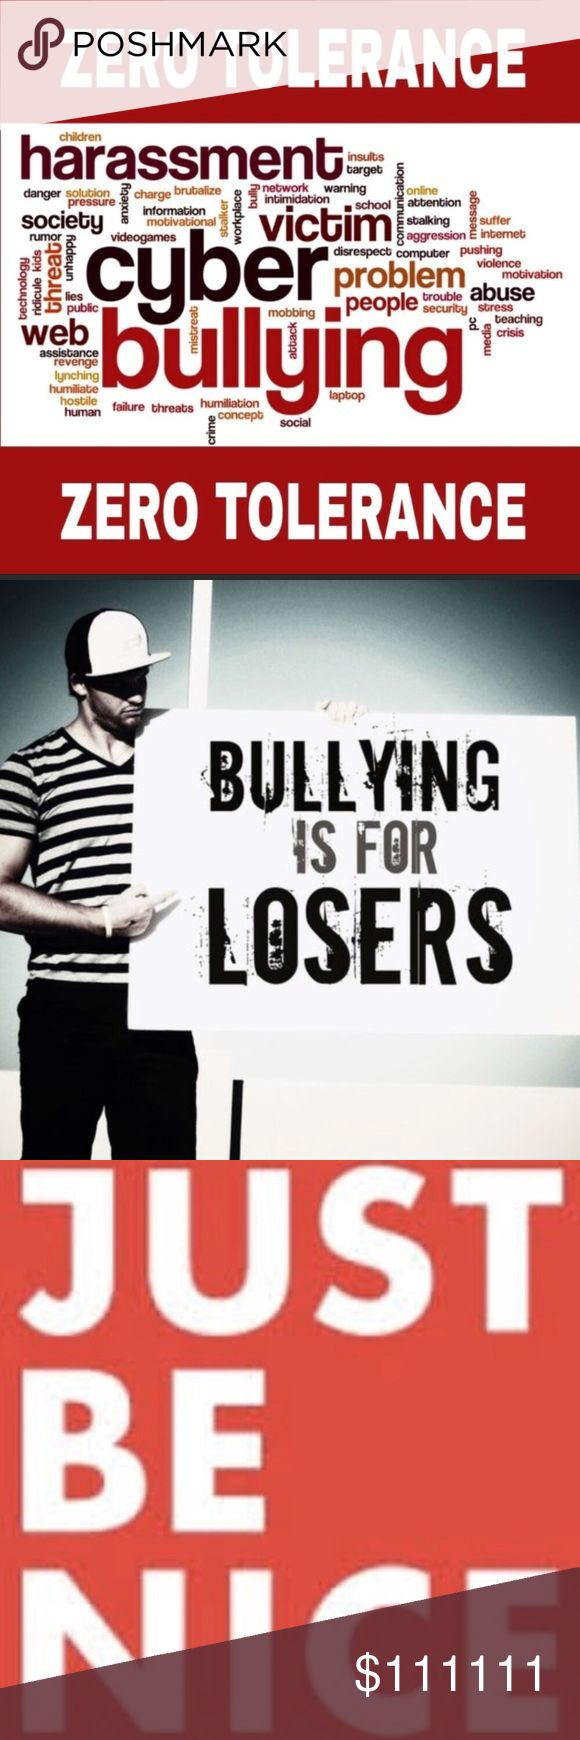 Zero Tolerance to Cyber Bulling! Please spread the word. Tag your PFFs in thus listing. Share with your followers and media.  Stop the bullying! 🛑 Stop the cyber bullying 🛑 If you see some bully please follow steps on pics to report them! Zero tolerance!!! Other